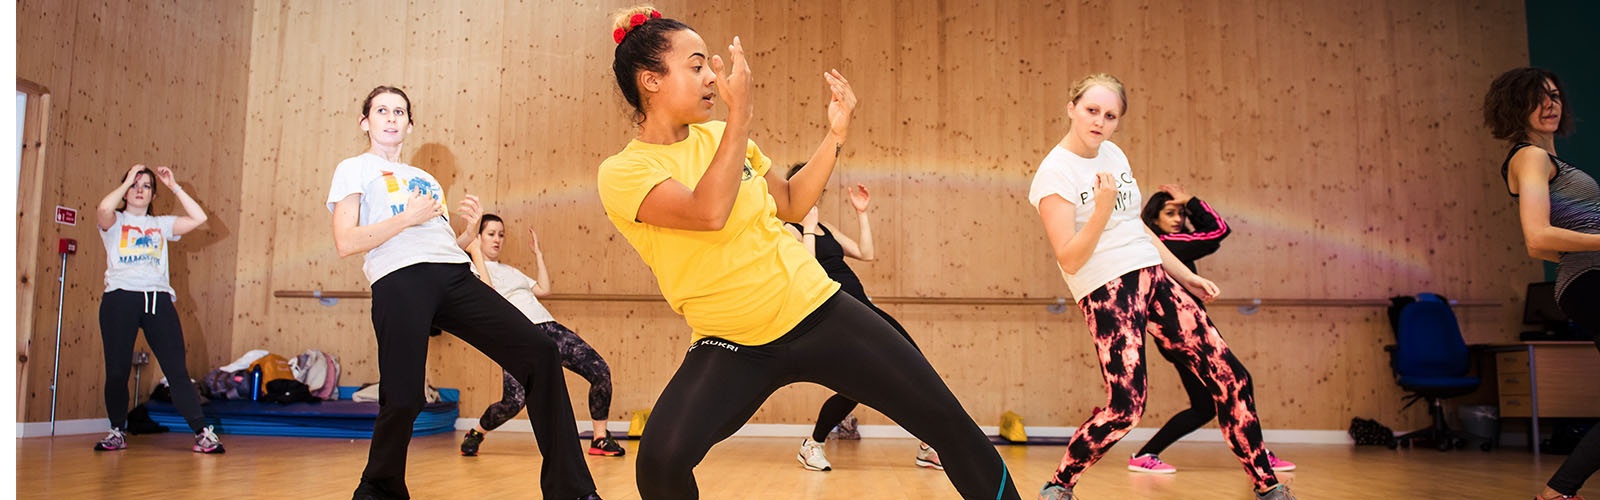 _0044_GOMammoth-Zumba-London